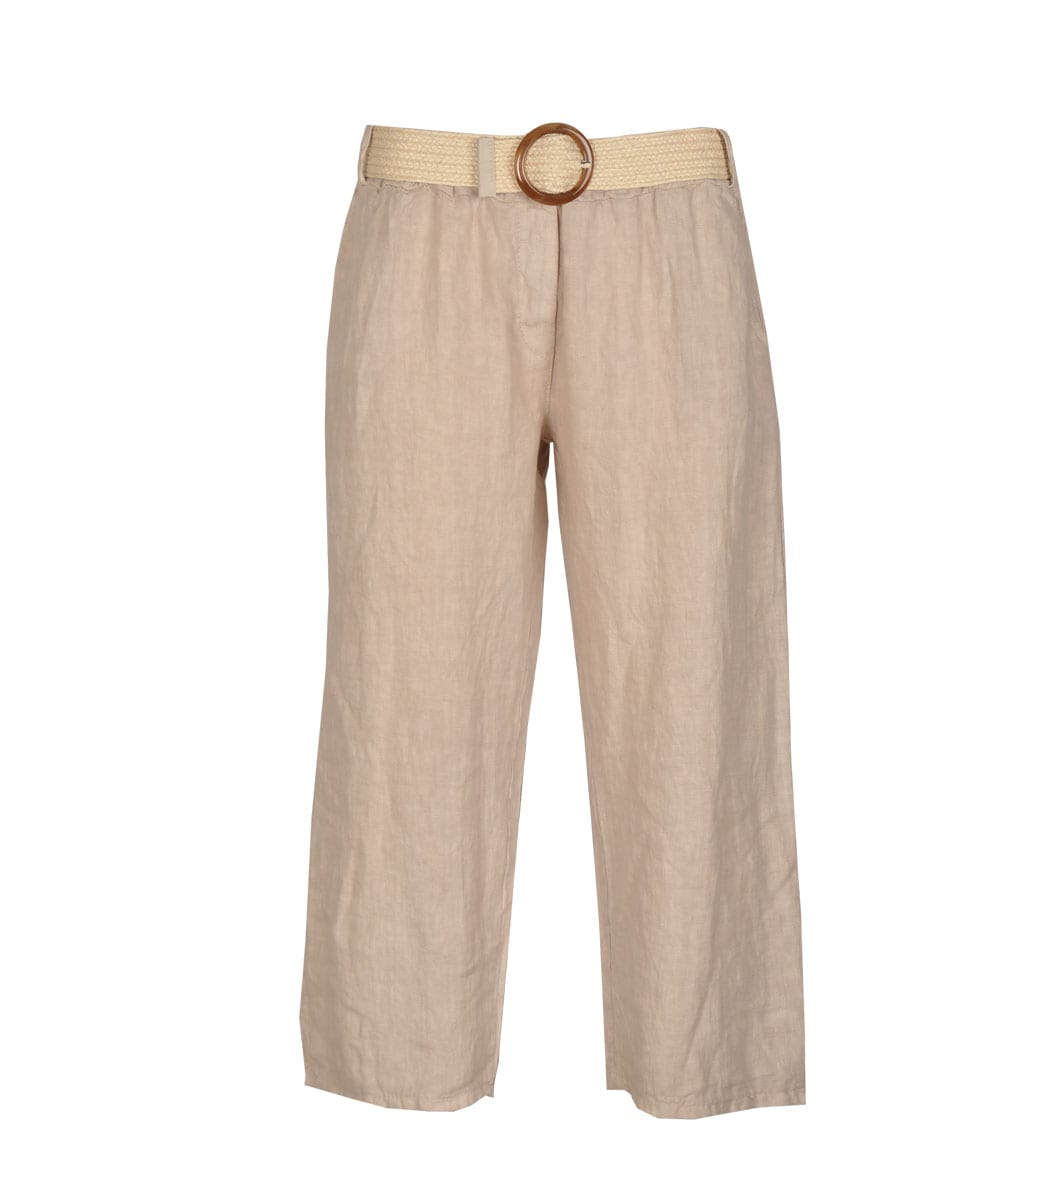 Belted flare pants